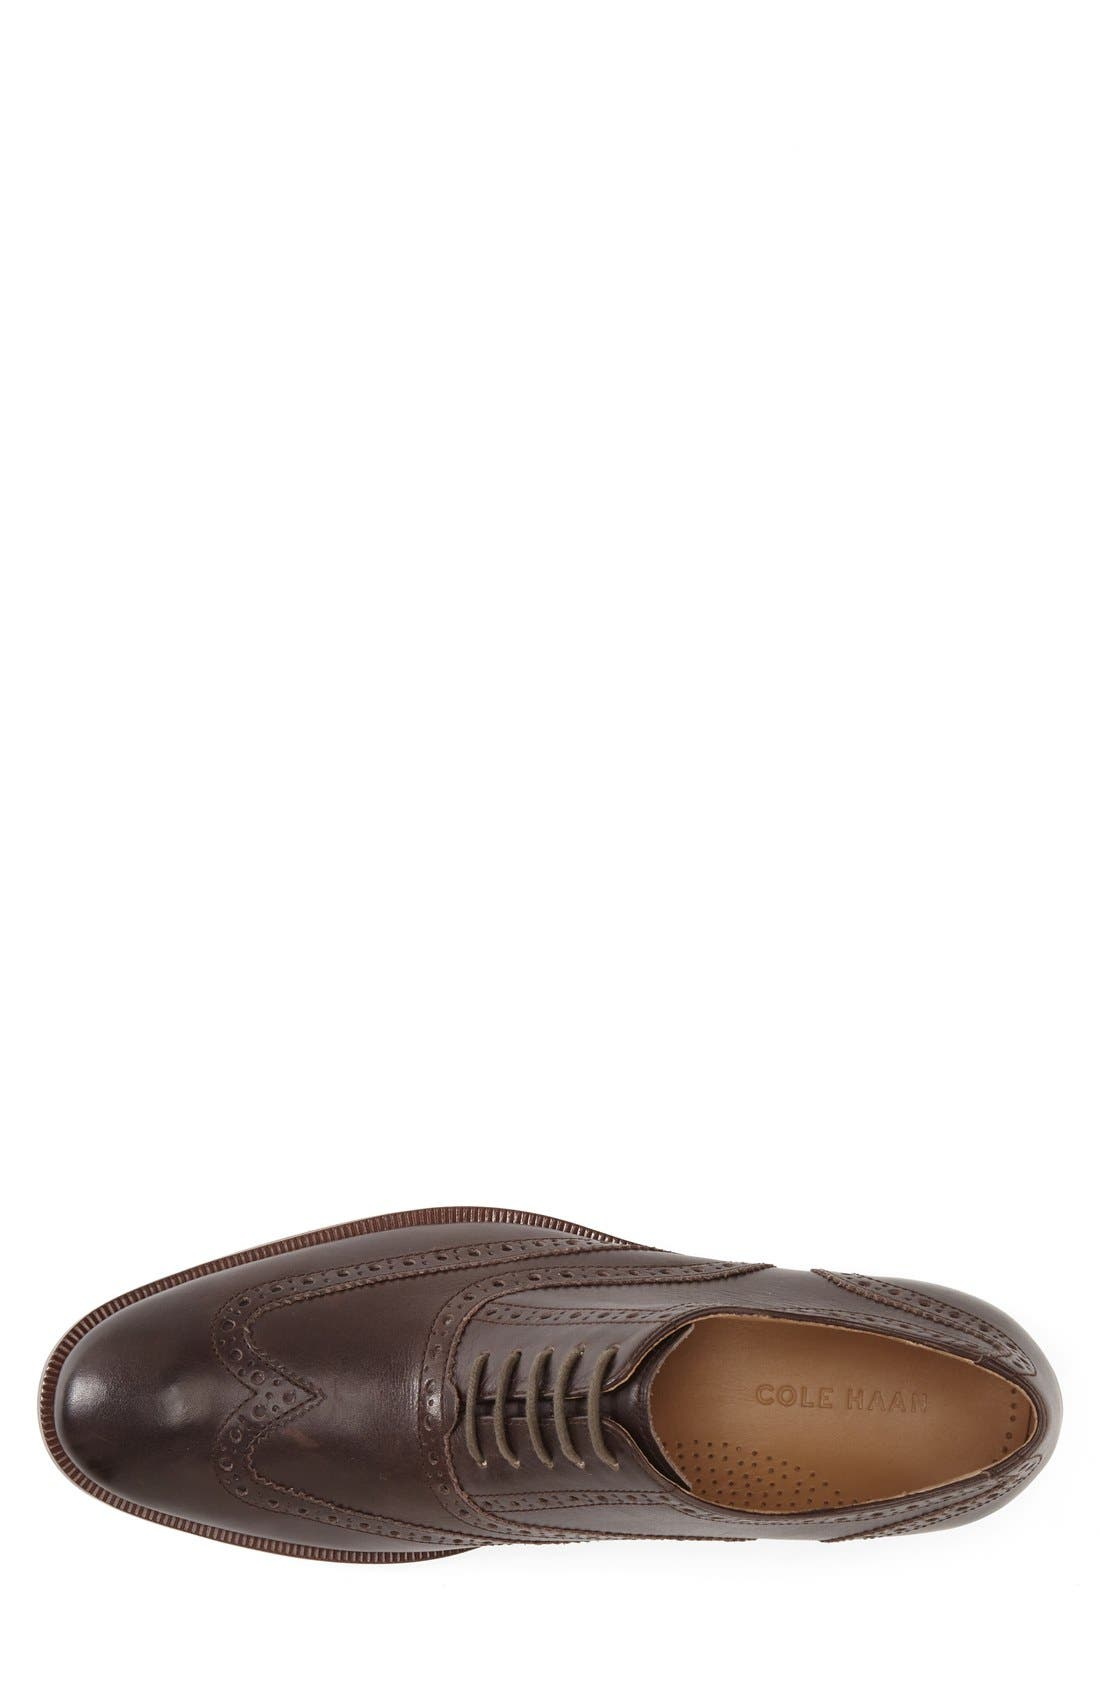 'Colton' Wingtip Oxford,                             Alternate thumbnail 3, color,                             Chestnut